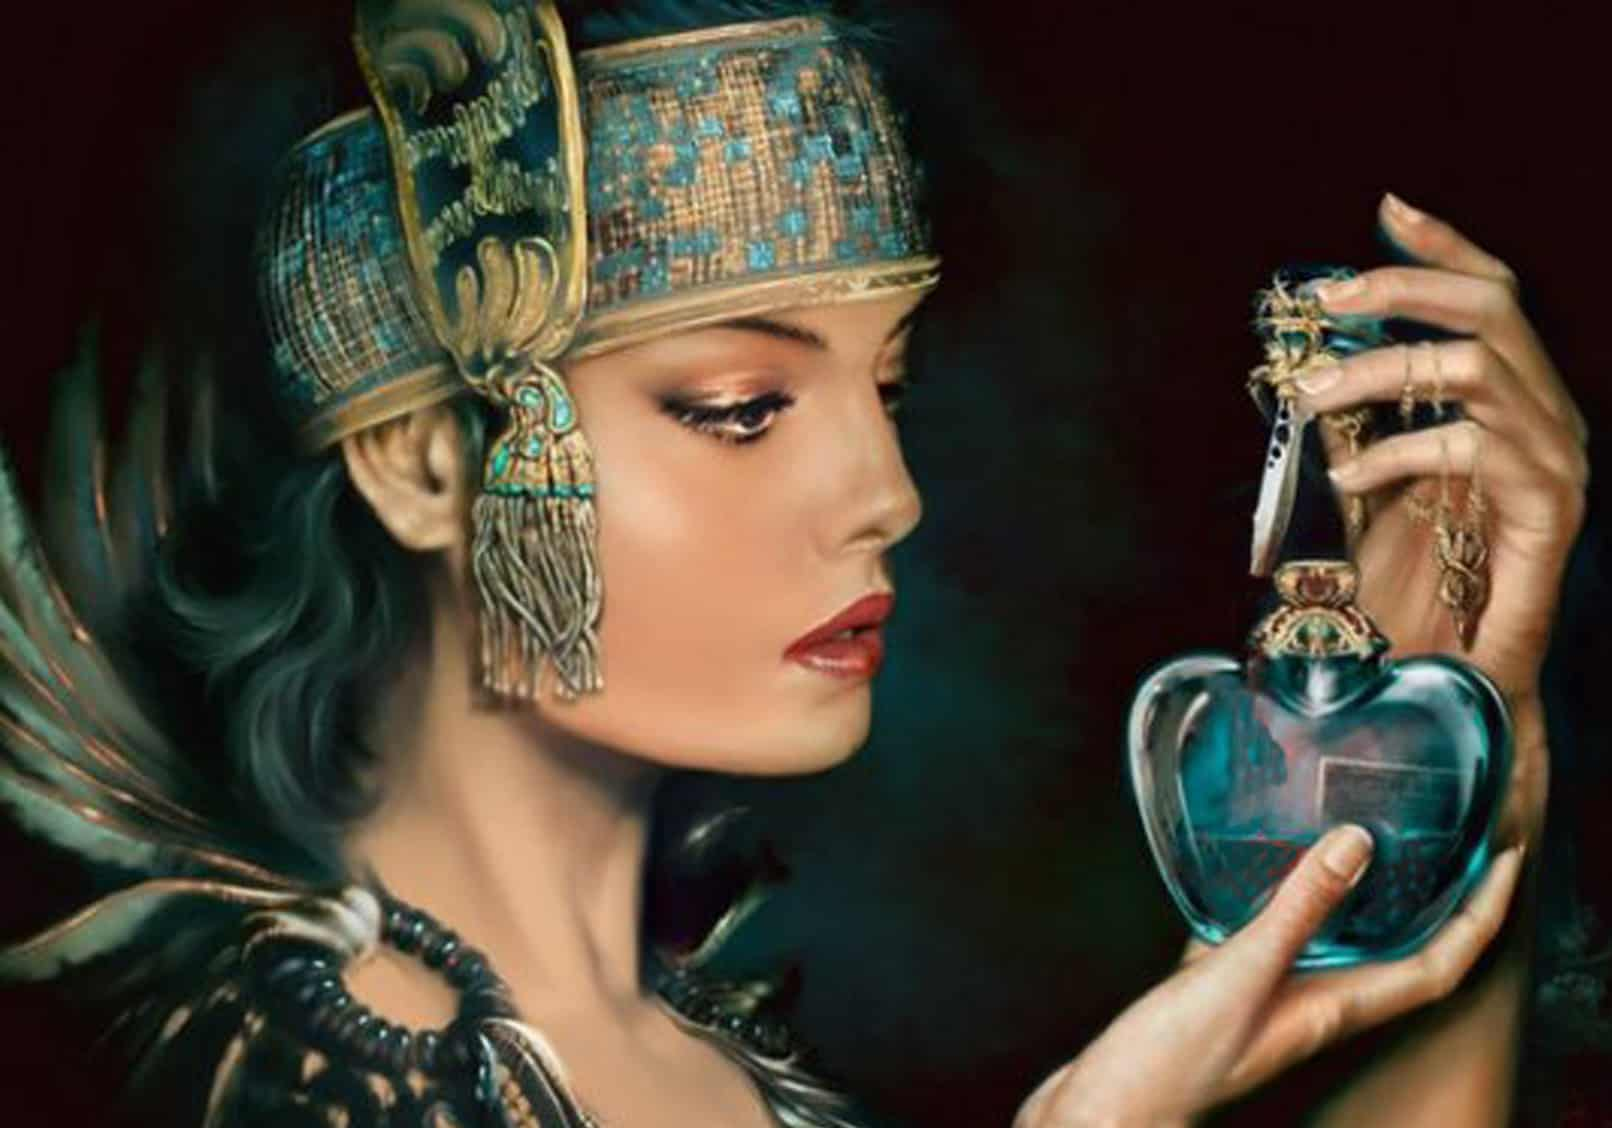 Cleopatra Used Love Potions, So Why Not You?